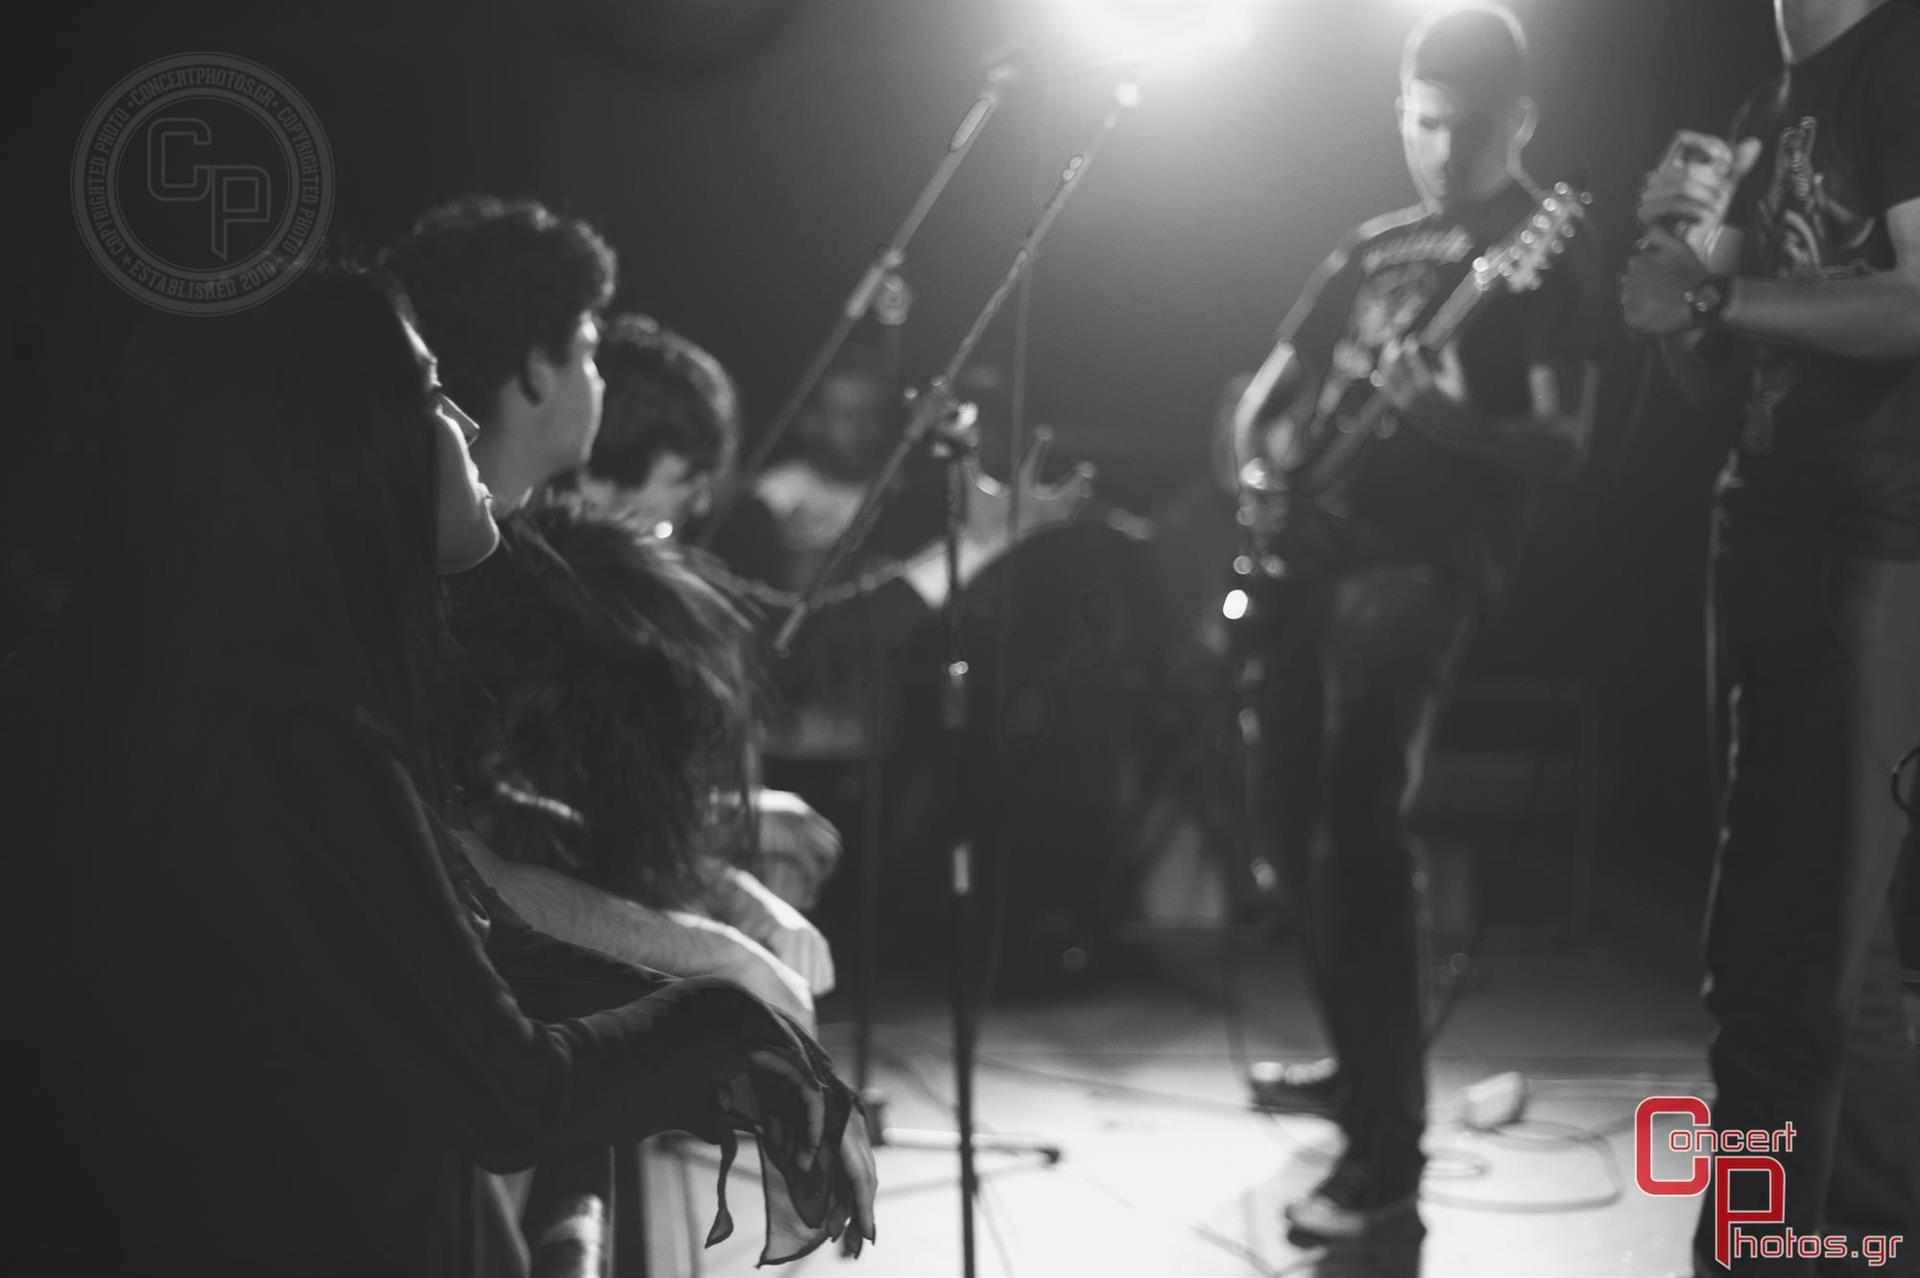 Battle Of The Bands Athens - Leg 3- photographer:  - ConcertPhotos - 20150104_2102_26